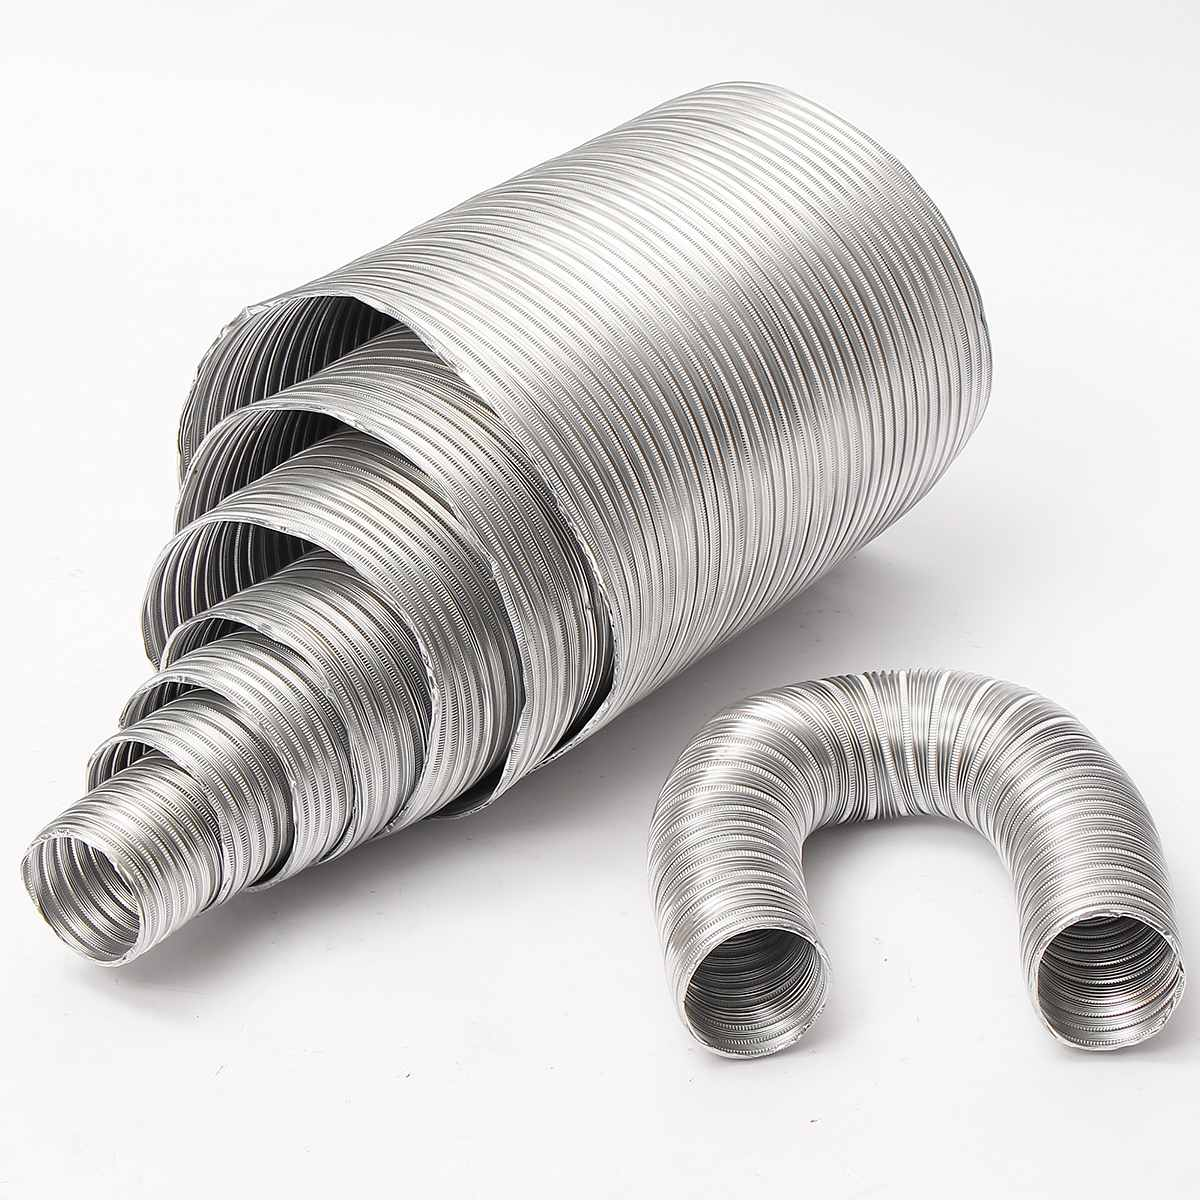 Aluminum Flexible 1M Length 80mm Diameter Exhaust Air Vent Pipe Duct Aluminium Foil Ducting Hose Ventilation